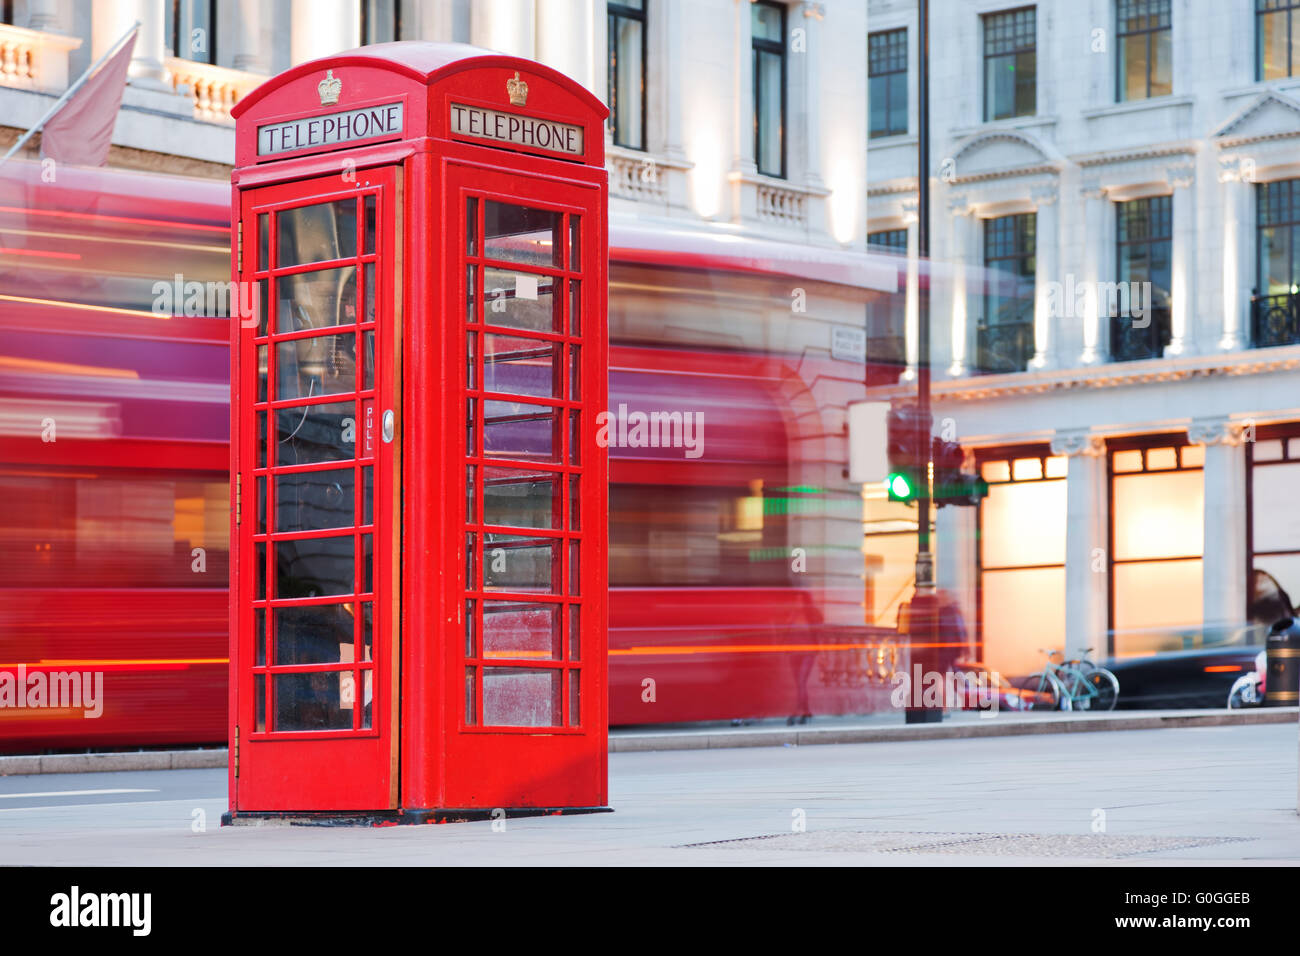 London, UK. Red telephone booth and red bus passing. Symbols of England. - Stock Image